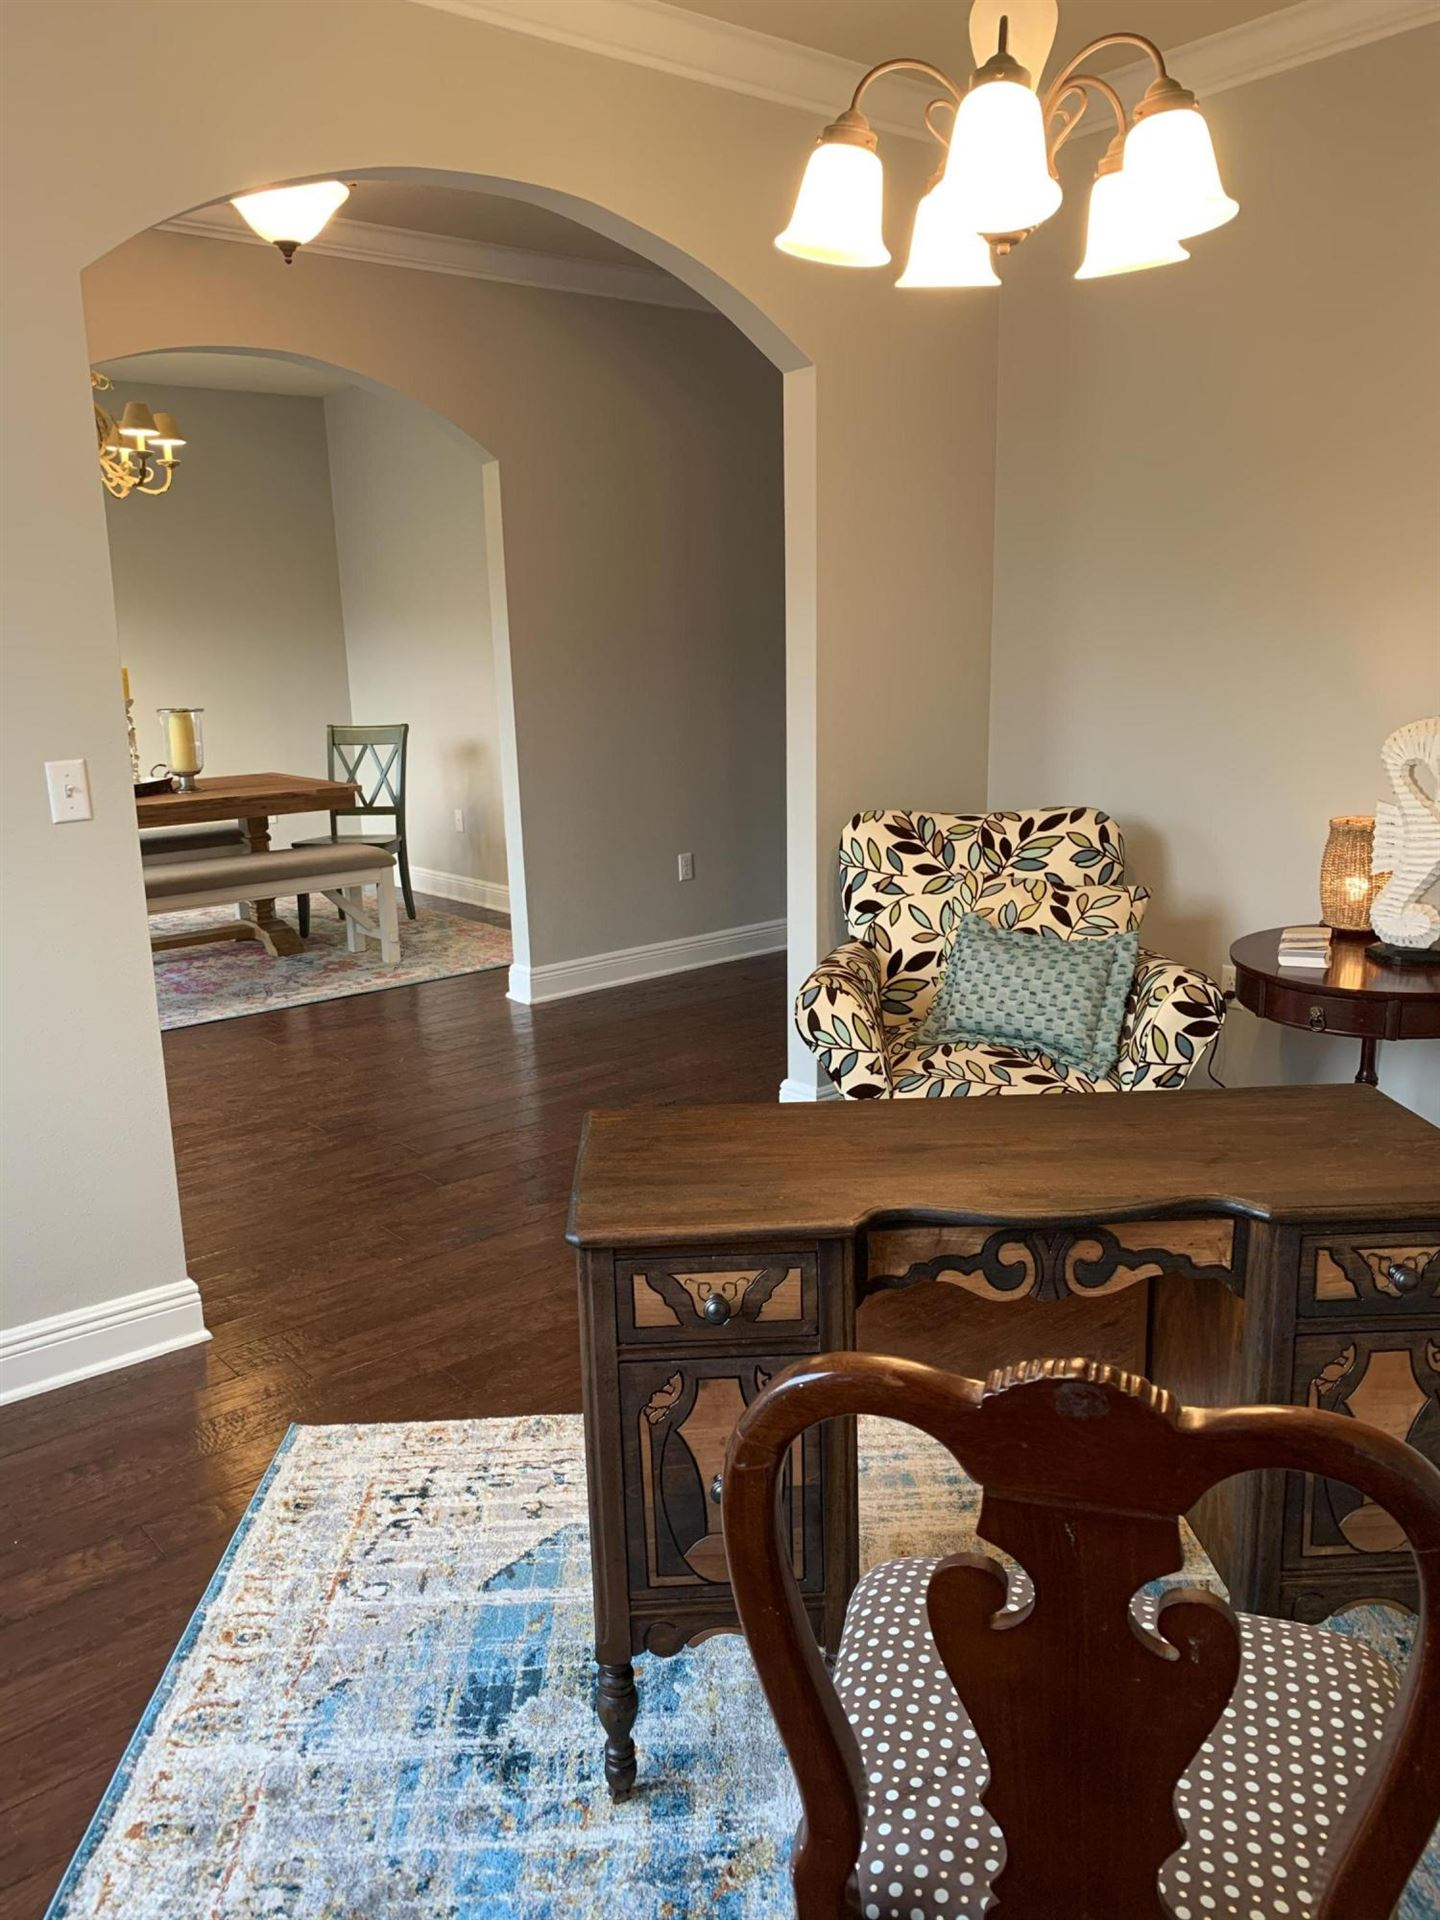 Property Image Of 157 Mussett Bayou Court In Santa Rosa Beach, Fl